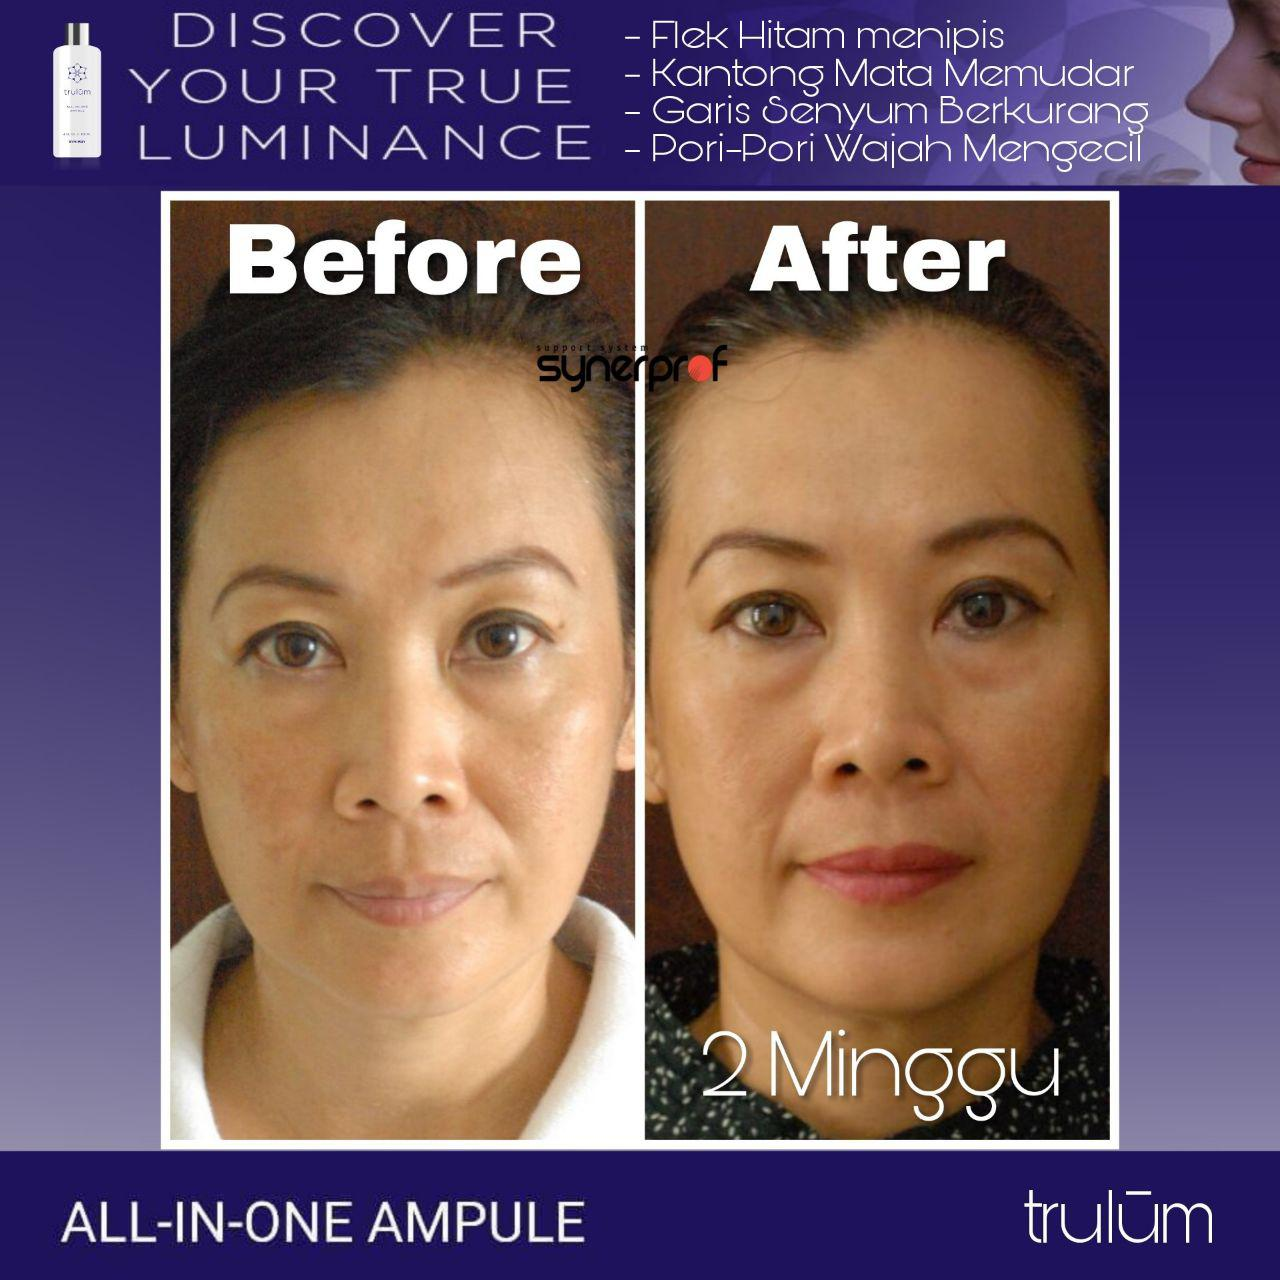 Jual Trulum All In One Ampoule Di Plemahan WA: 08112338376